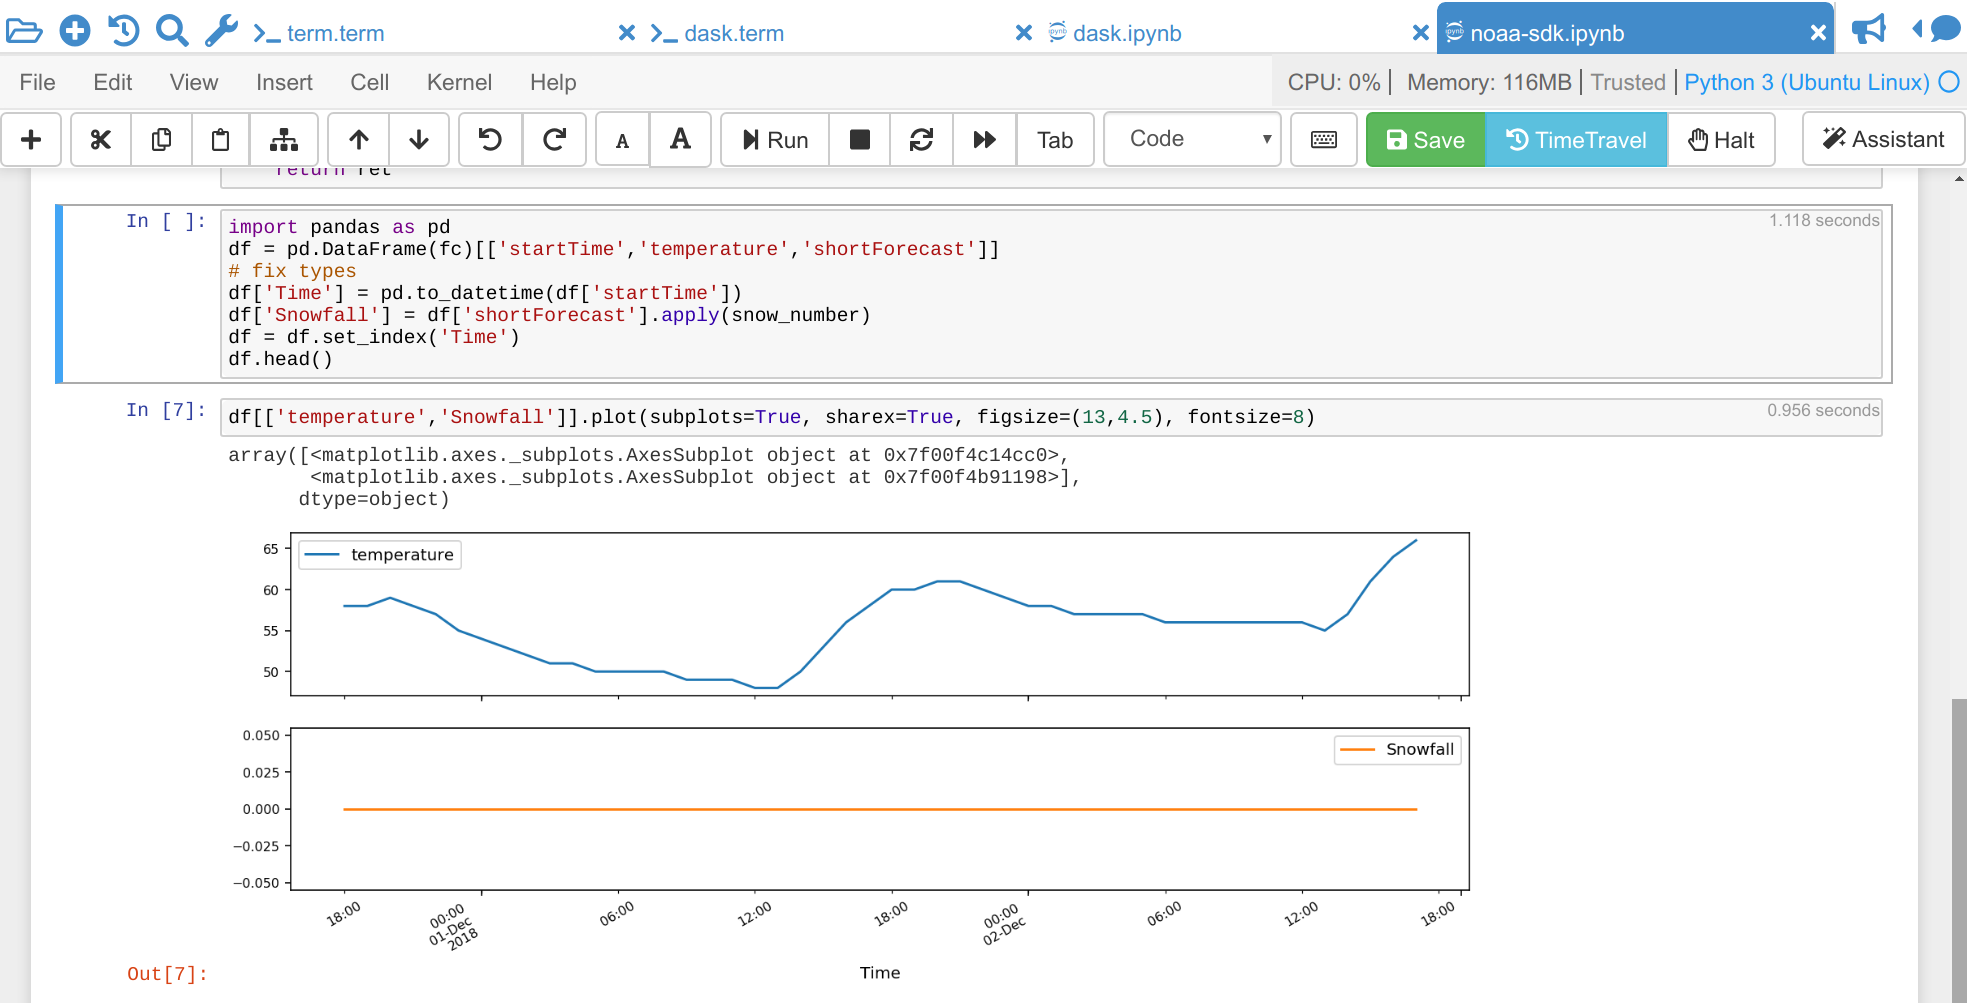 _images/jupyter-notebook-cocalc-1.png